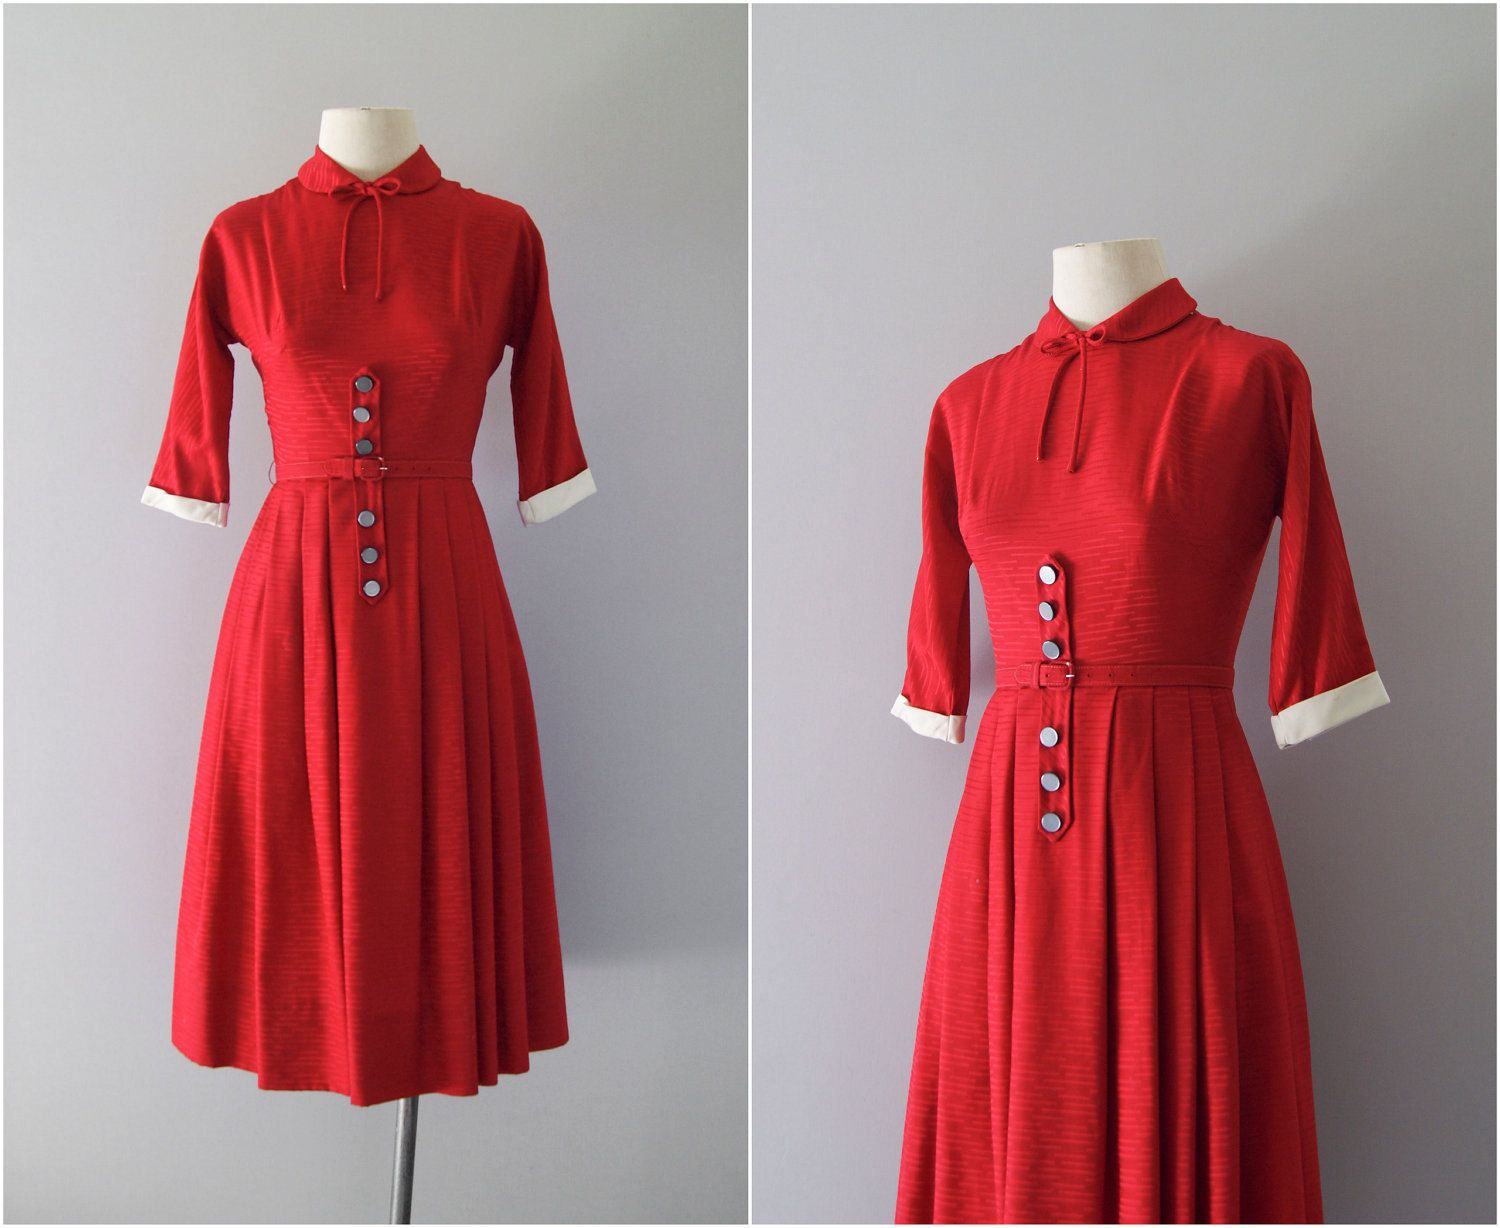 40s Dress 1940s Classic Red Day Dress Red Robin Dress 94 00 Via Etsy 1940s Dresses Day Dresses 40s Dress [ 1228 x 1500 Pixel ]